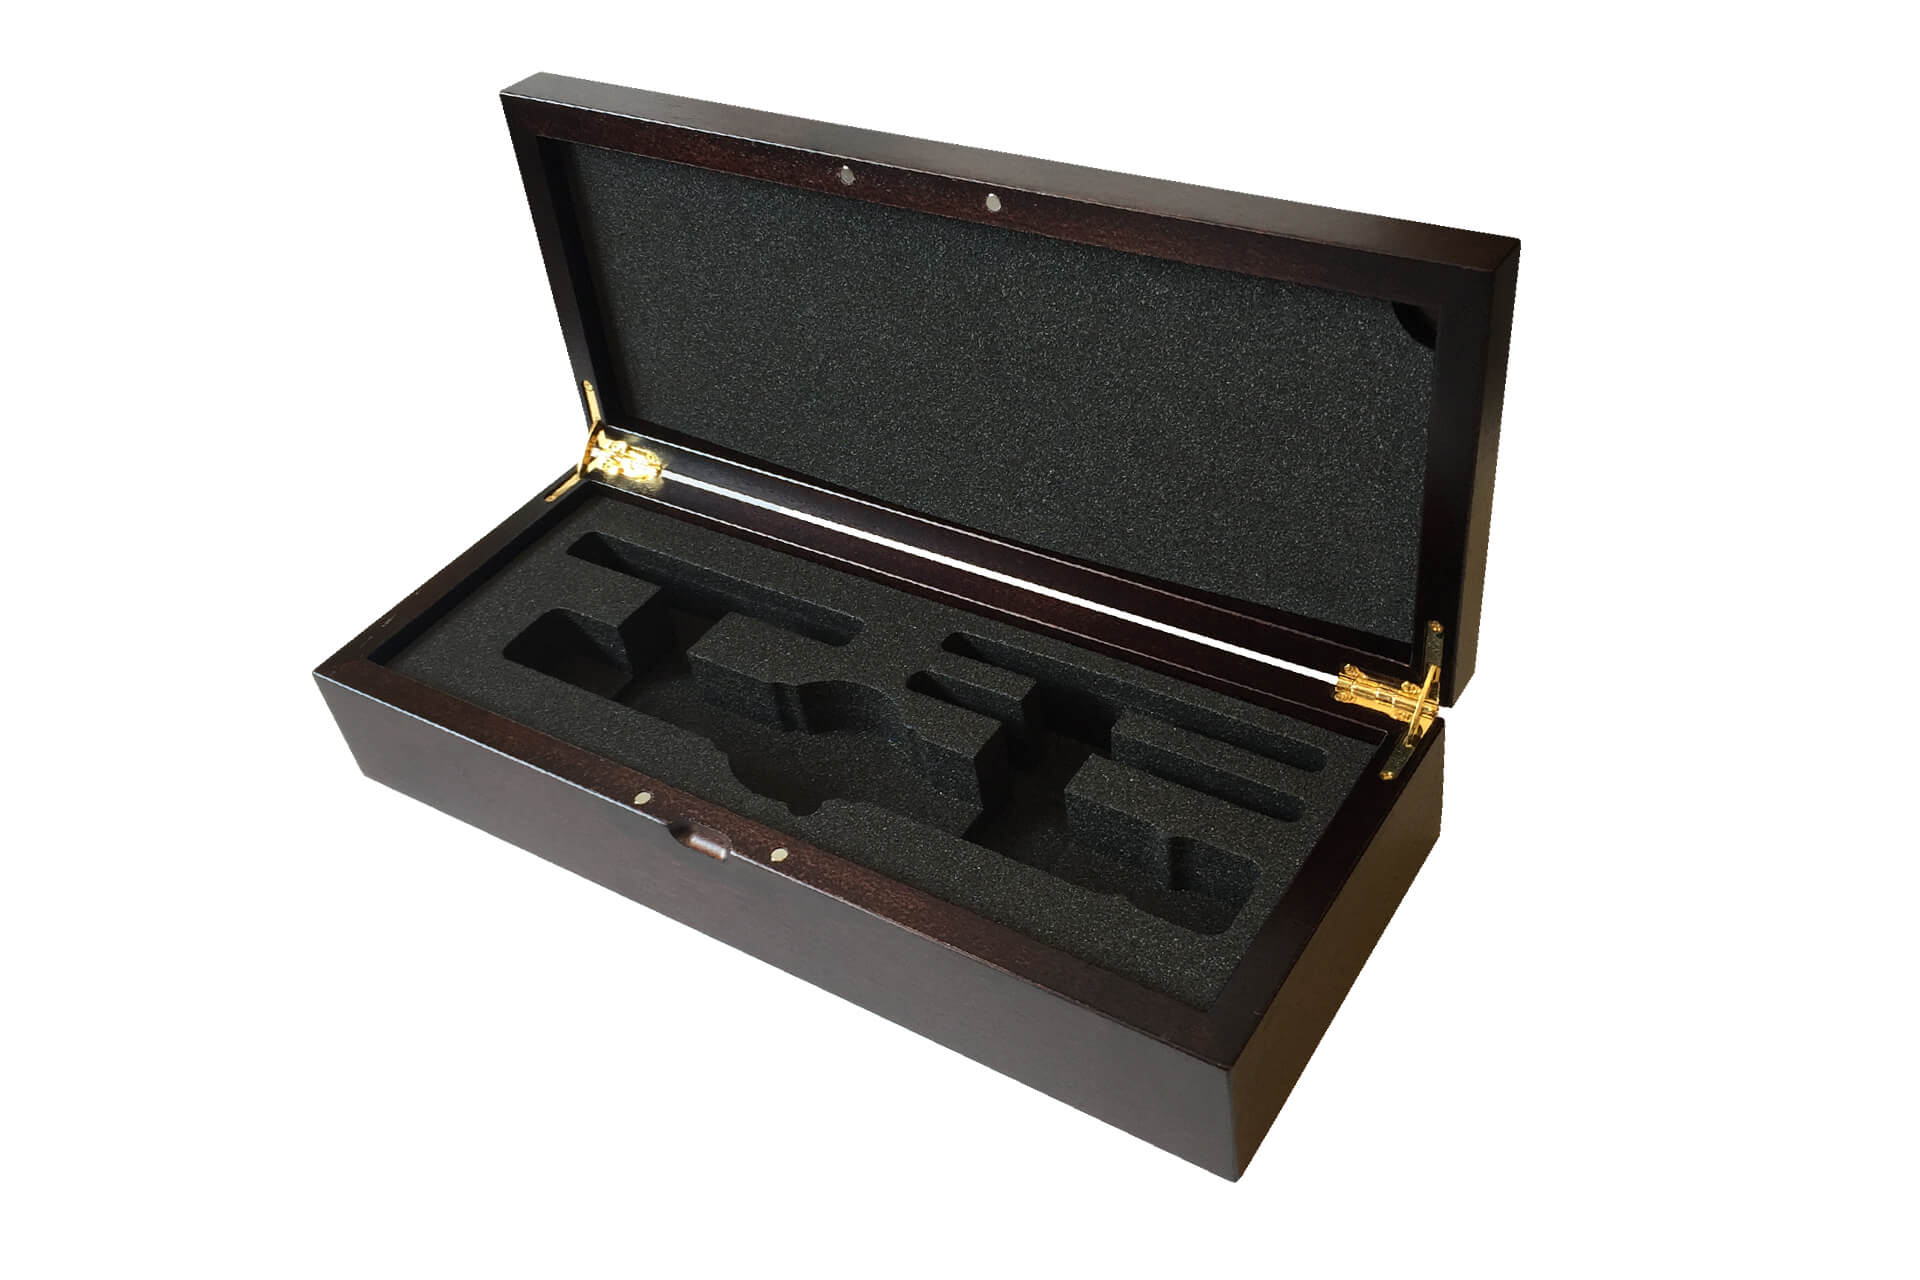 bespoke wooden boxes for watch packaging b-h192